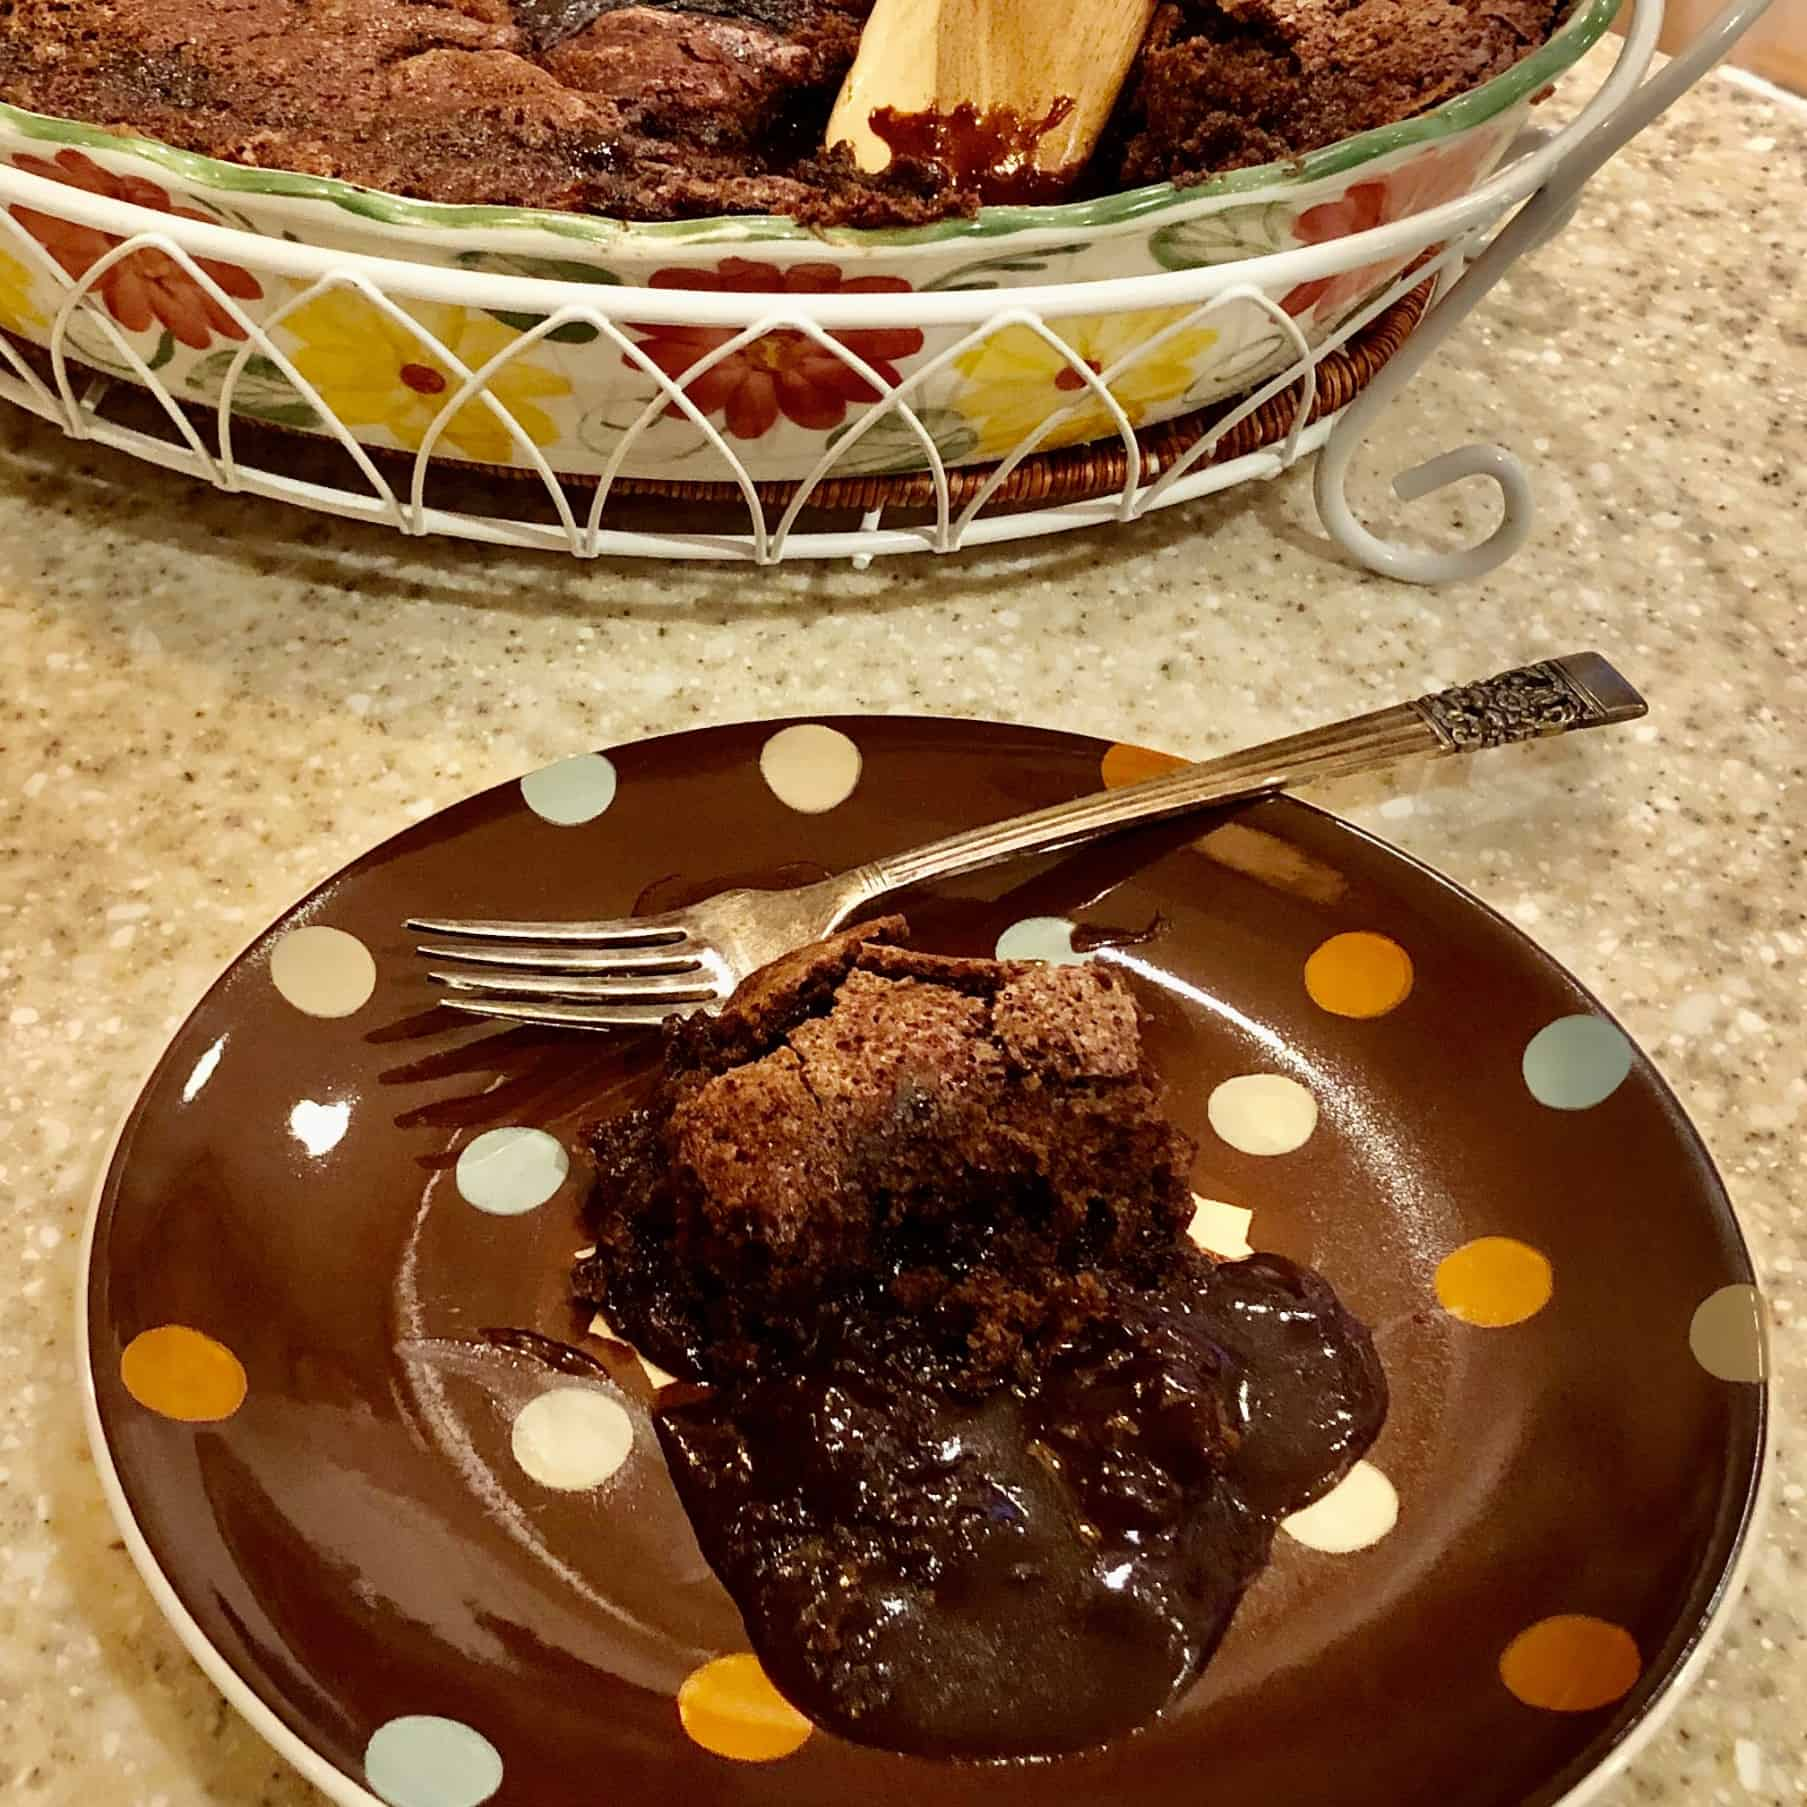 chocolate cobbler on polka dot plate with fork